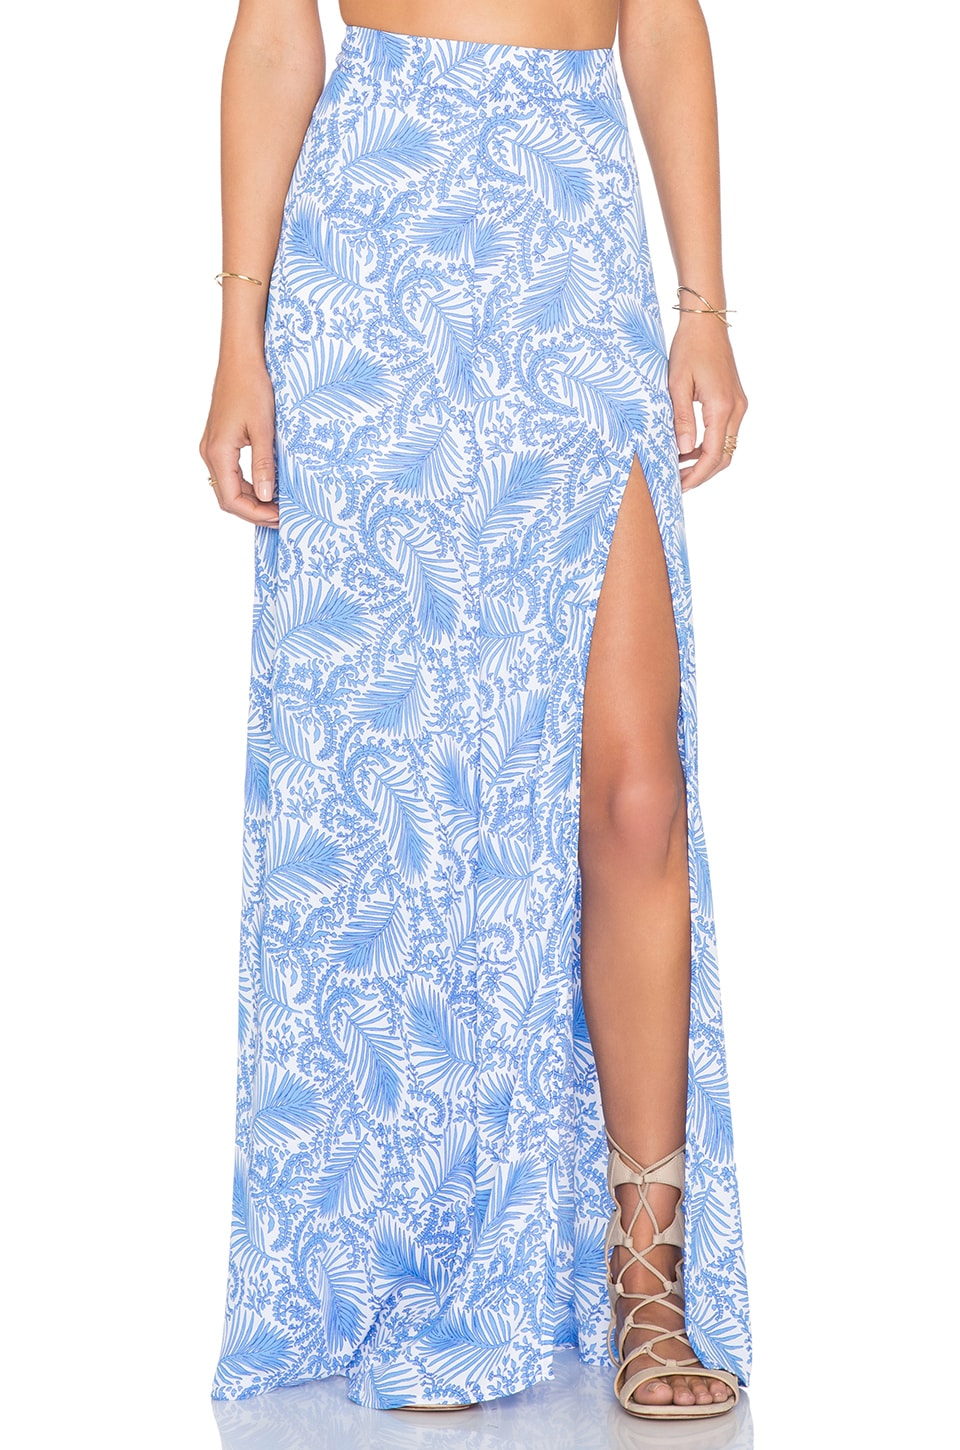 Show Me Your Mumu Mick Slit Skirt in Sea Breeze